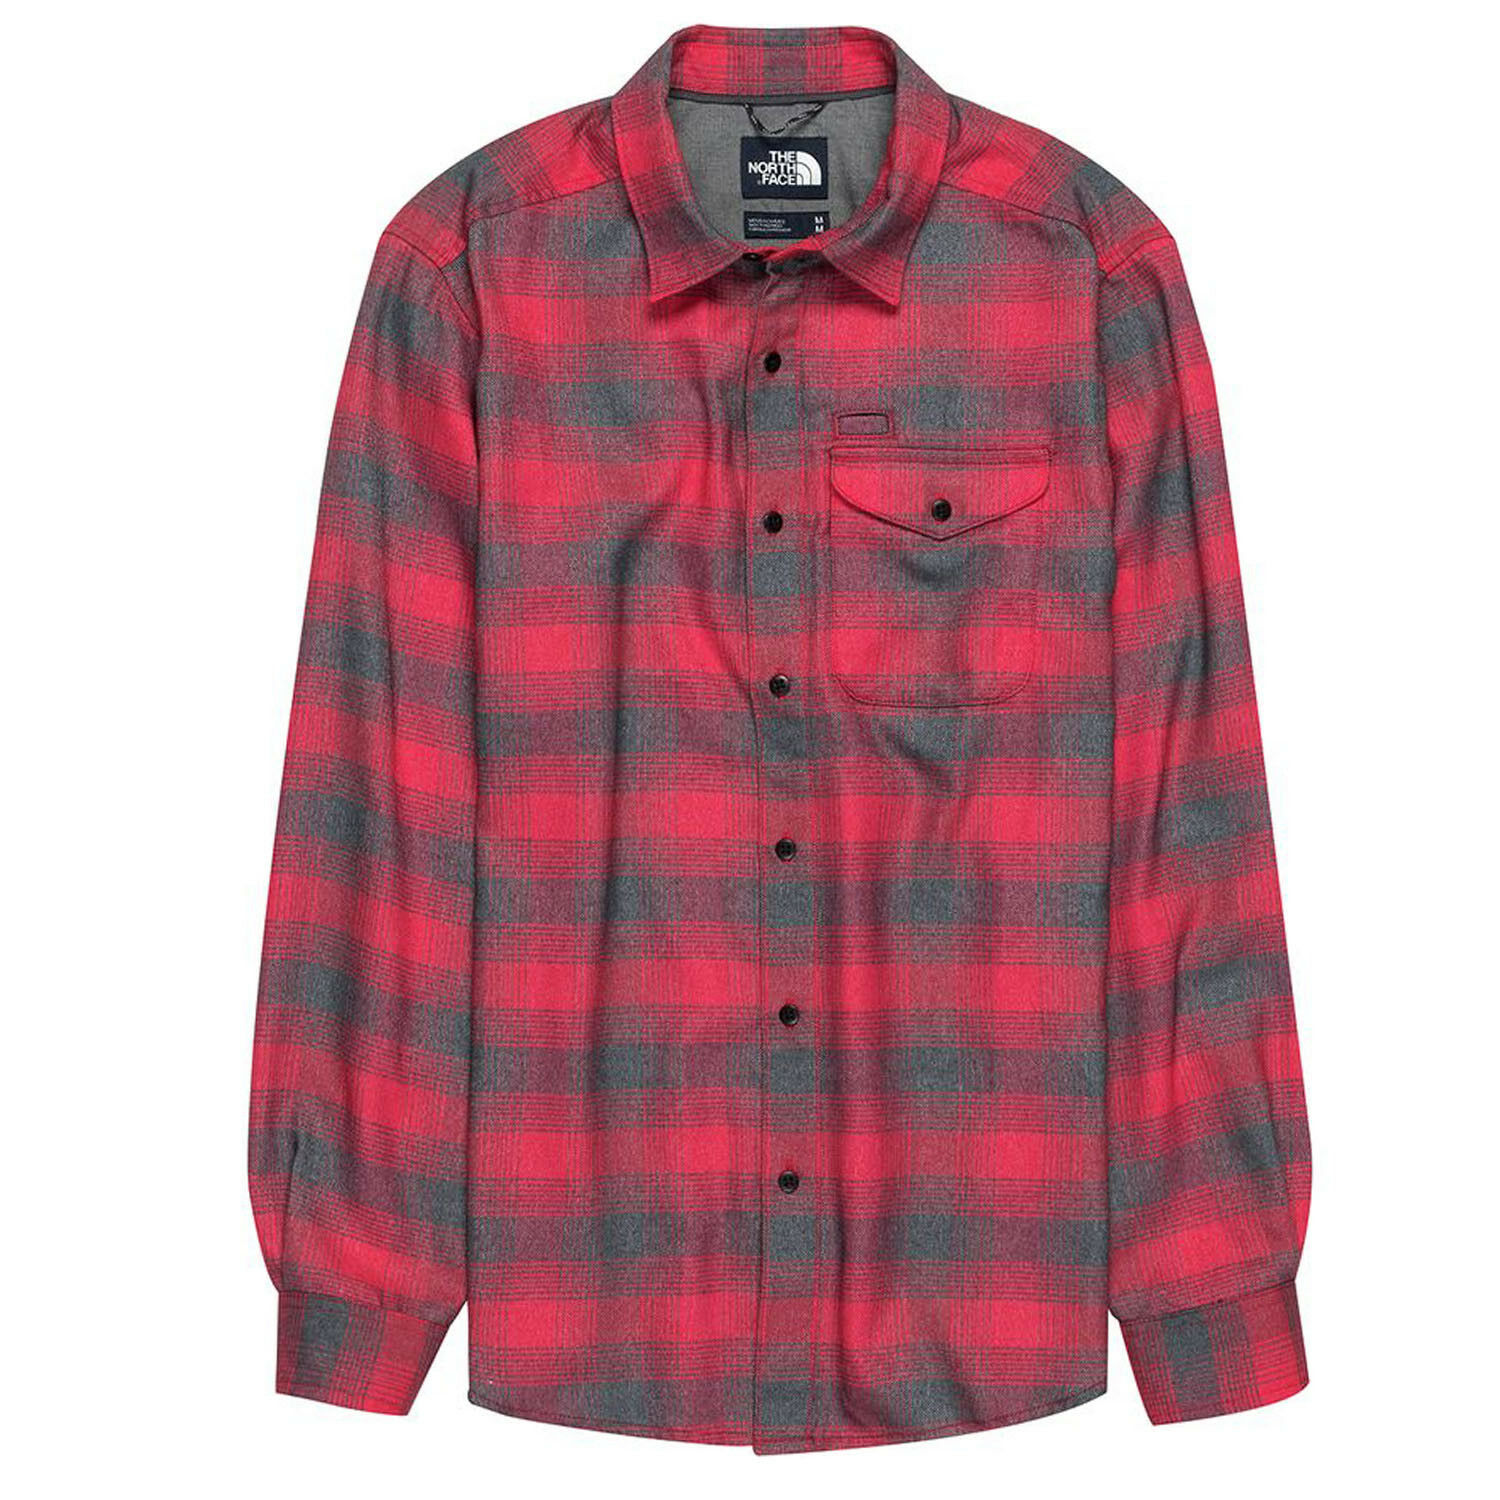 THE NORTH FACE Mens 2019 THERMOCORE LONG-SLEEVED SHIRT TNF Red Prospect Plaid